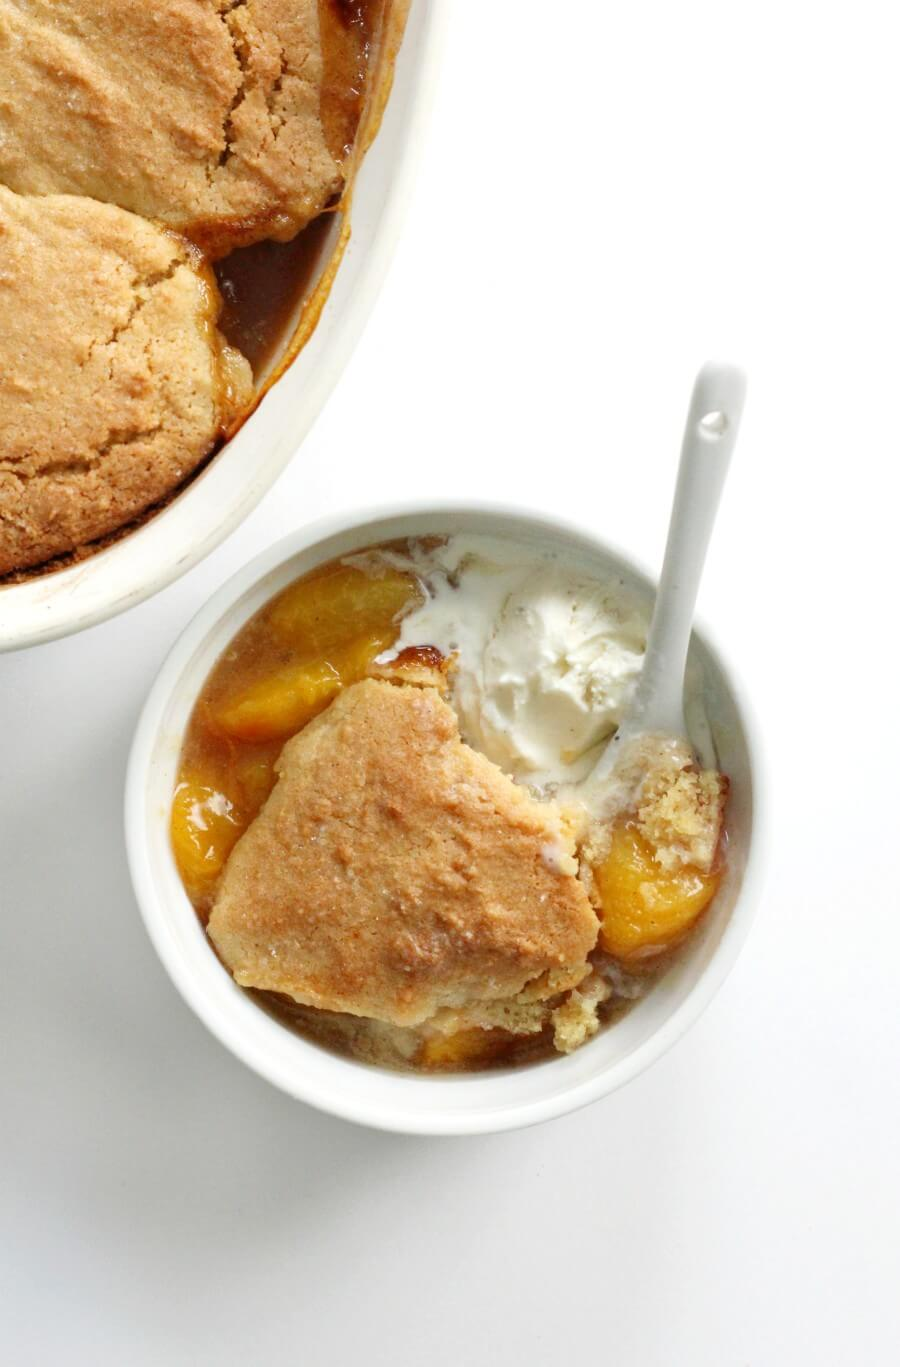 overhead view of gluten-free peach cobbler in bowl and casserole dish